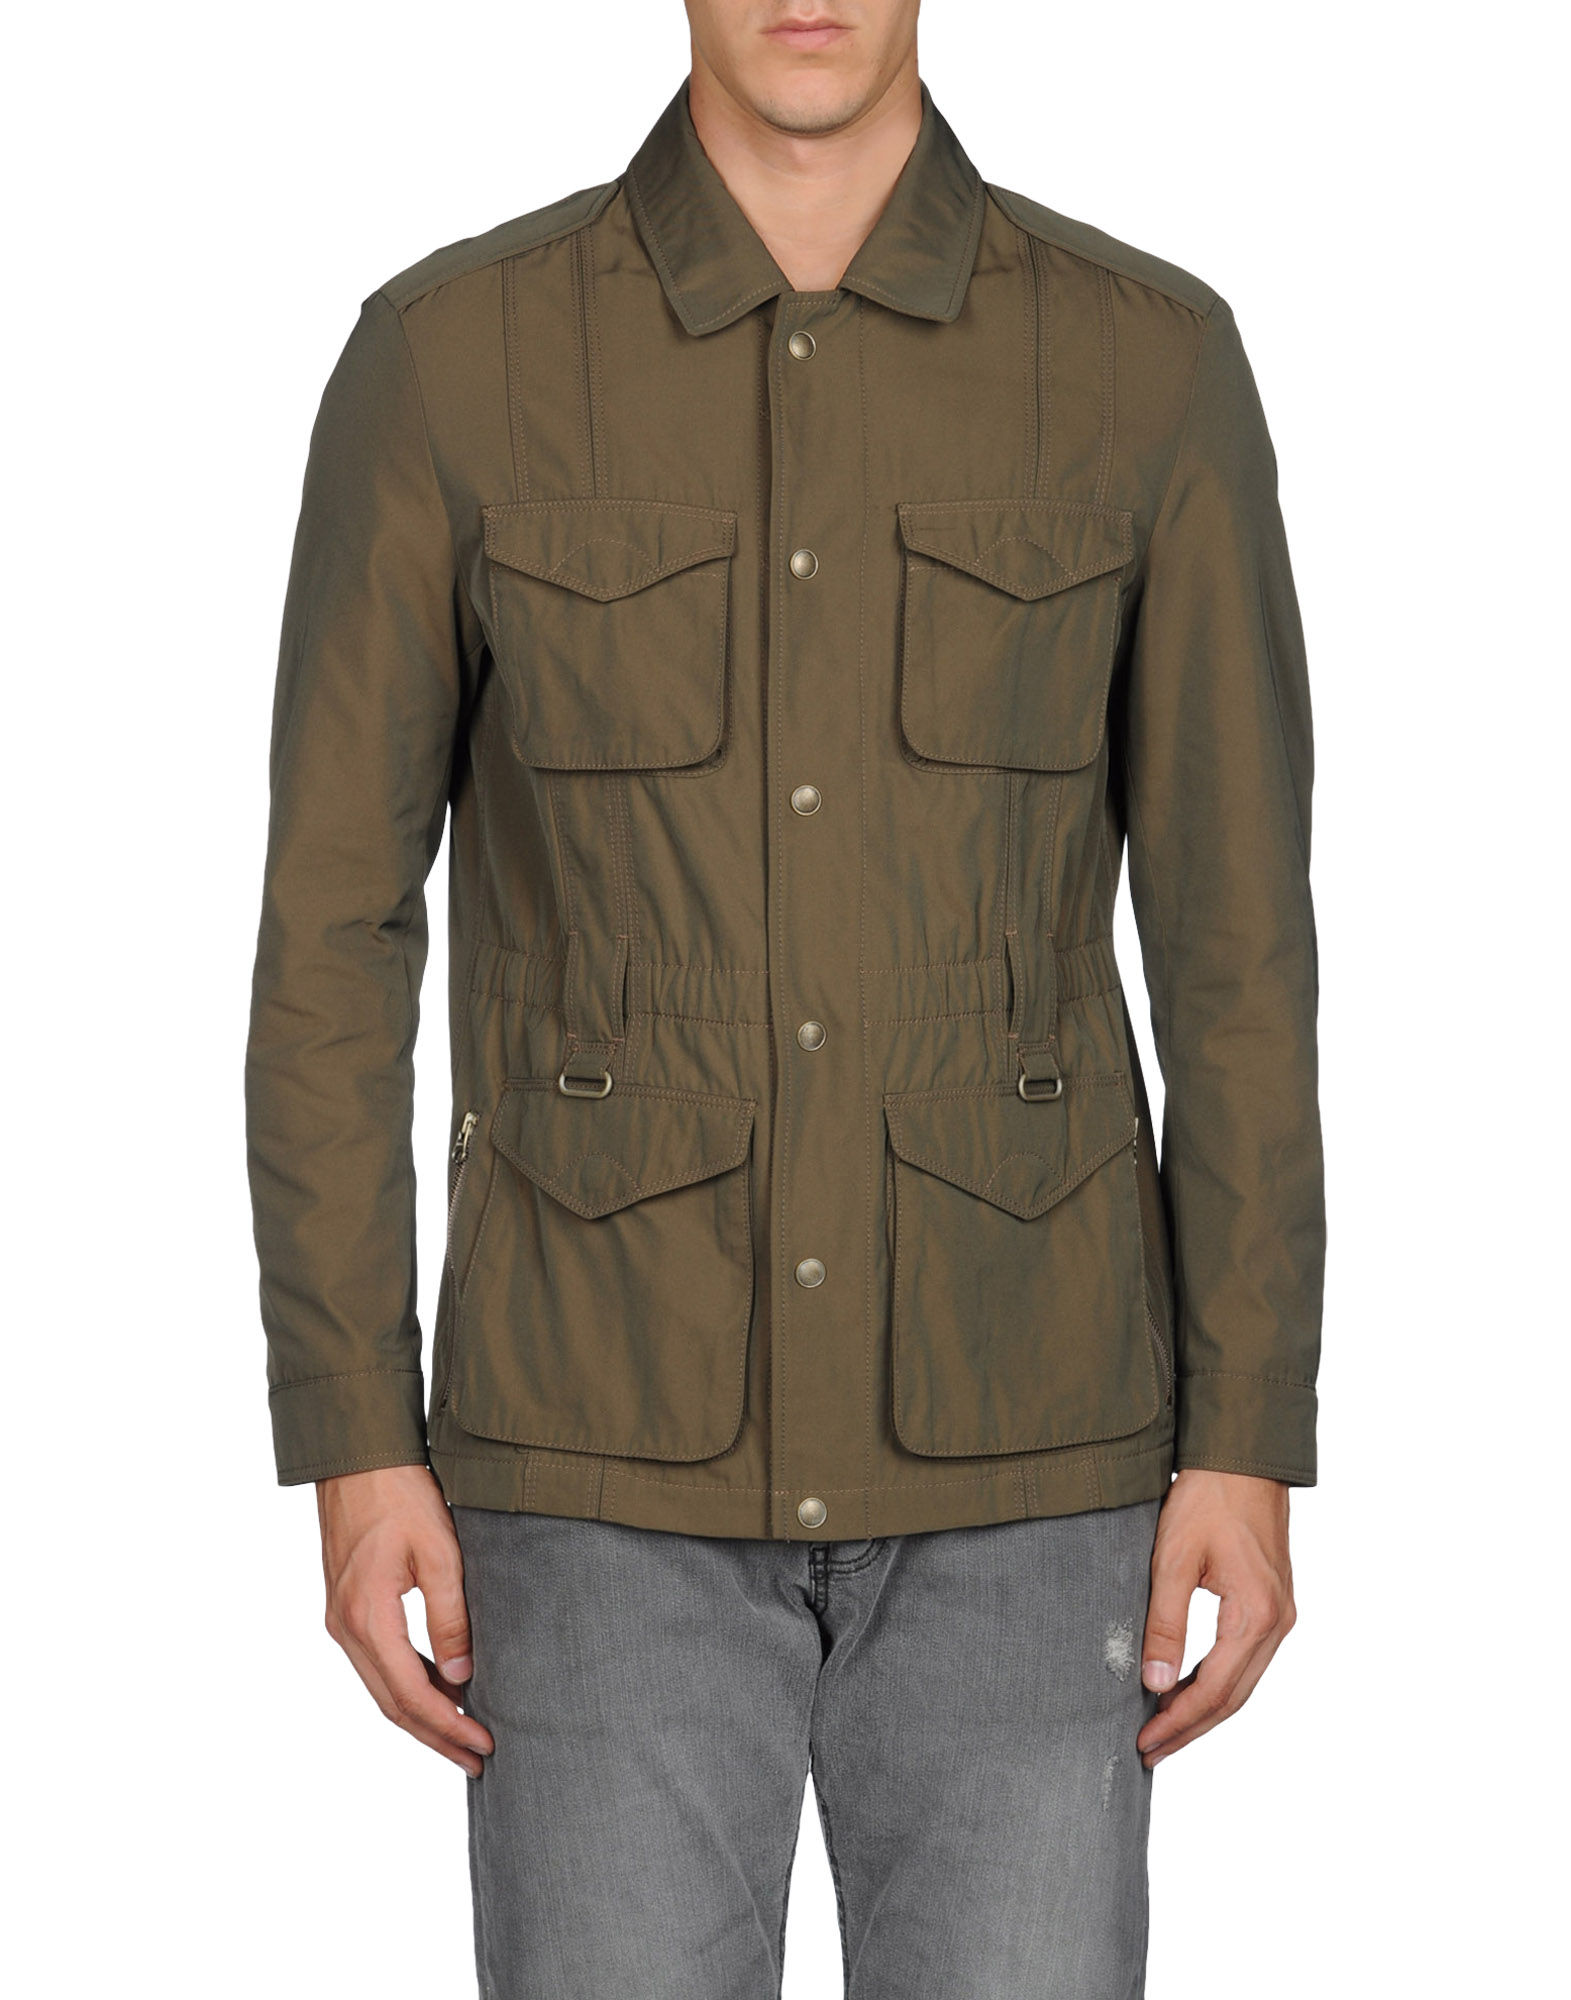 hugo boss jacket in khaki for men vert lyst. Black Bedroom Furniture Sets. Home Design Ideas